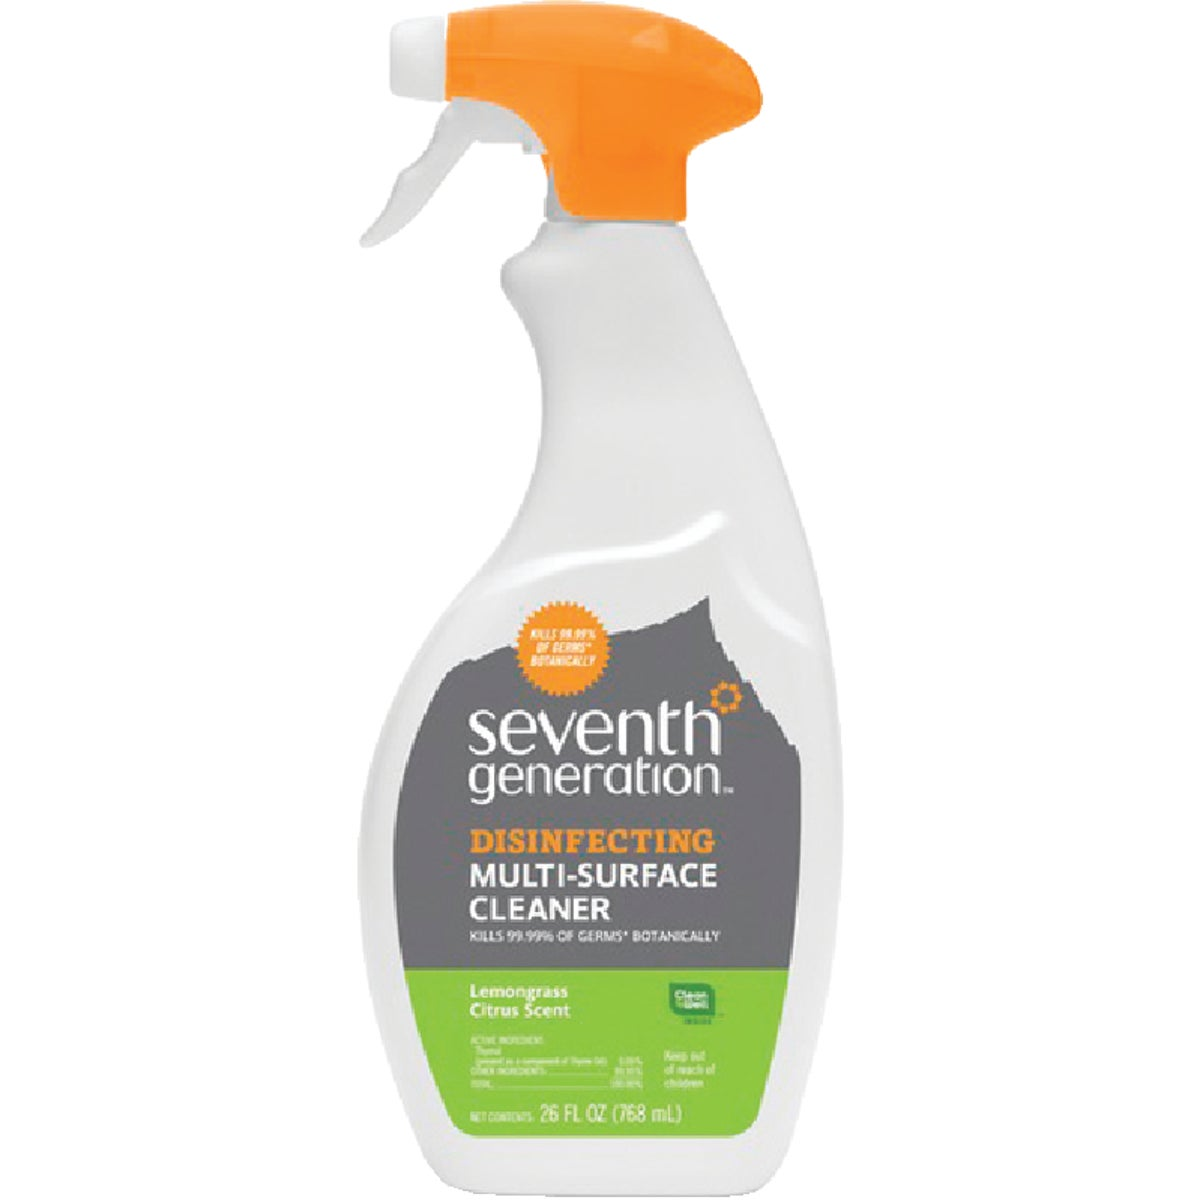 26OZ MULTI-SURFC CLEANER - 10732913228109 by Seventh Generation